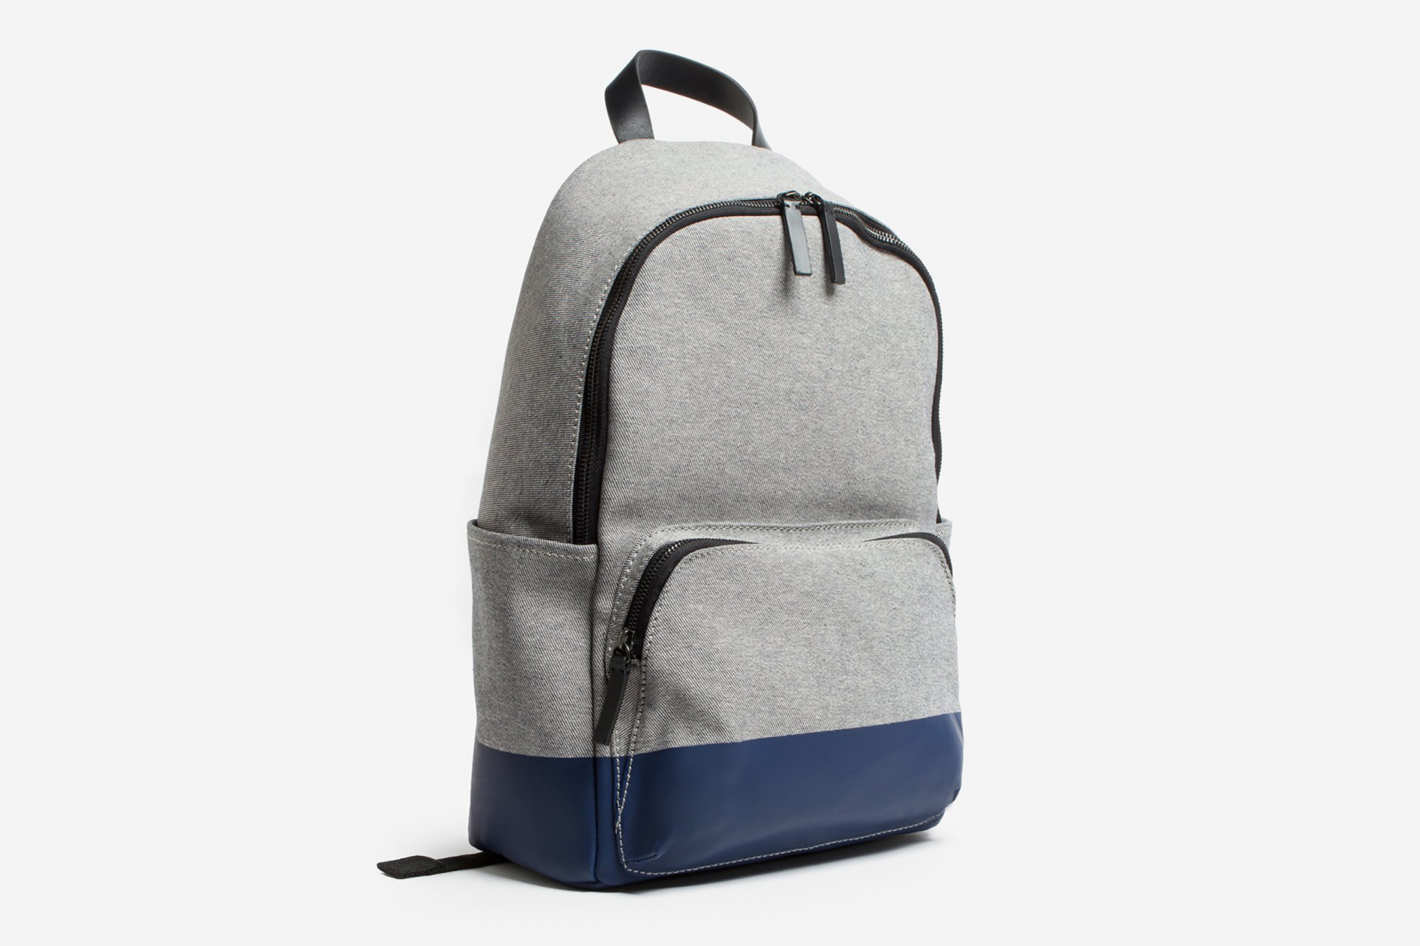 Everlane Modern Zip Backpack in Reverse Denim/Dipped Navy